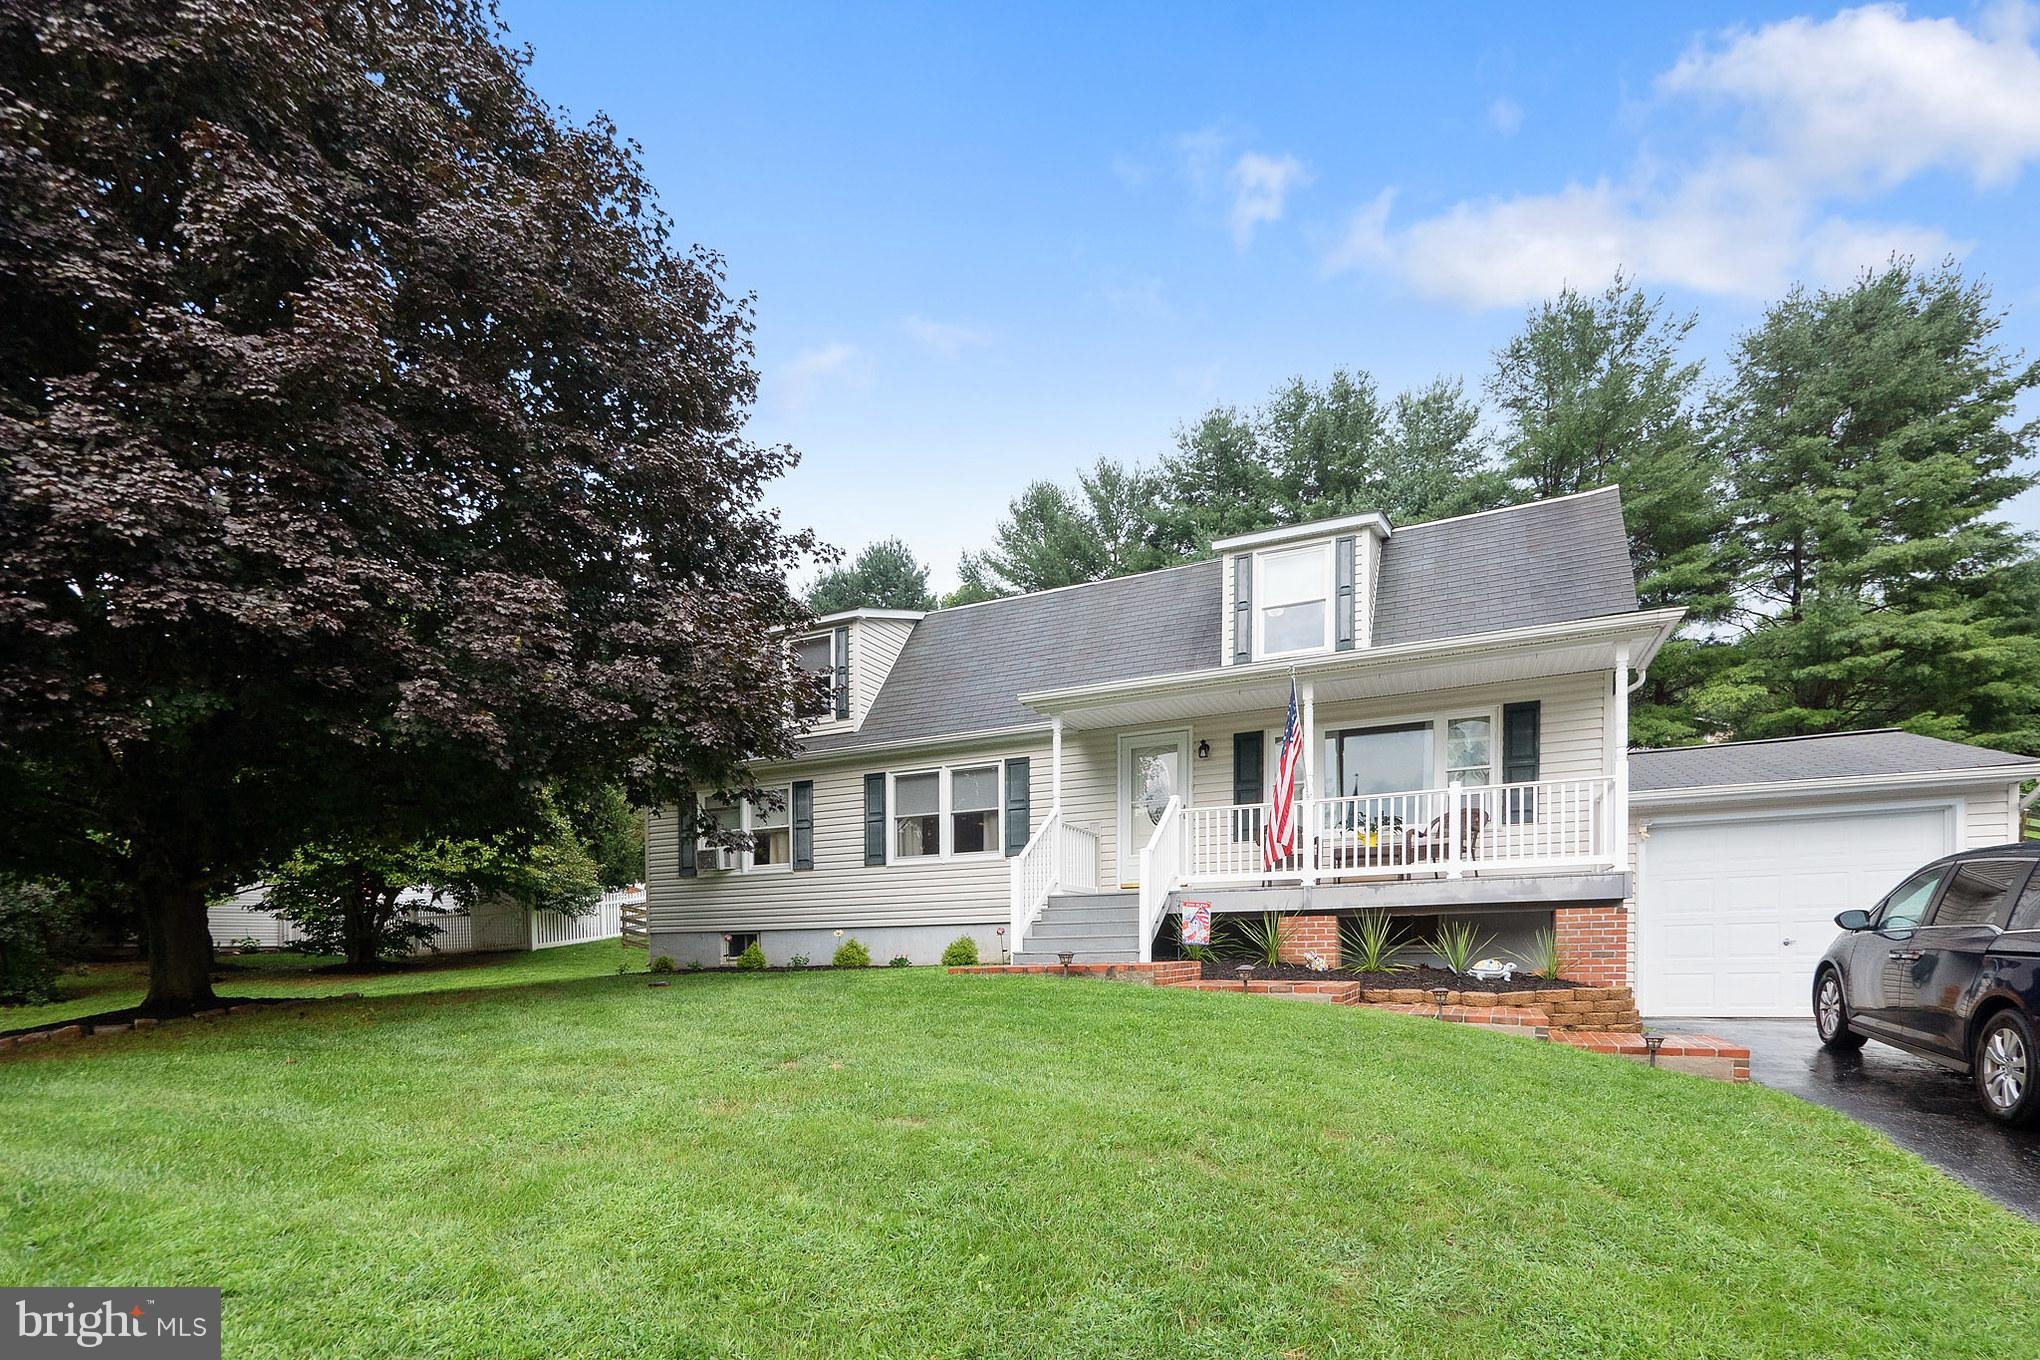 2716 COON CLUB ROAD, WESTMINSTER, MD 21157